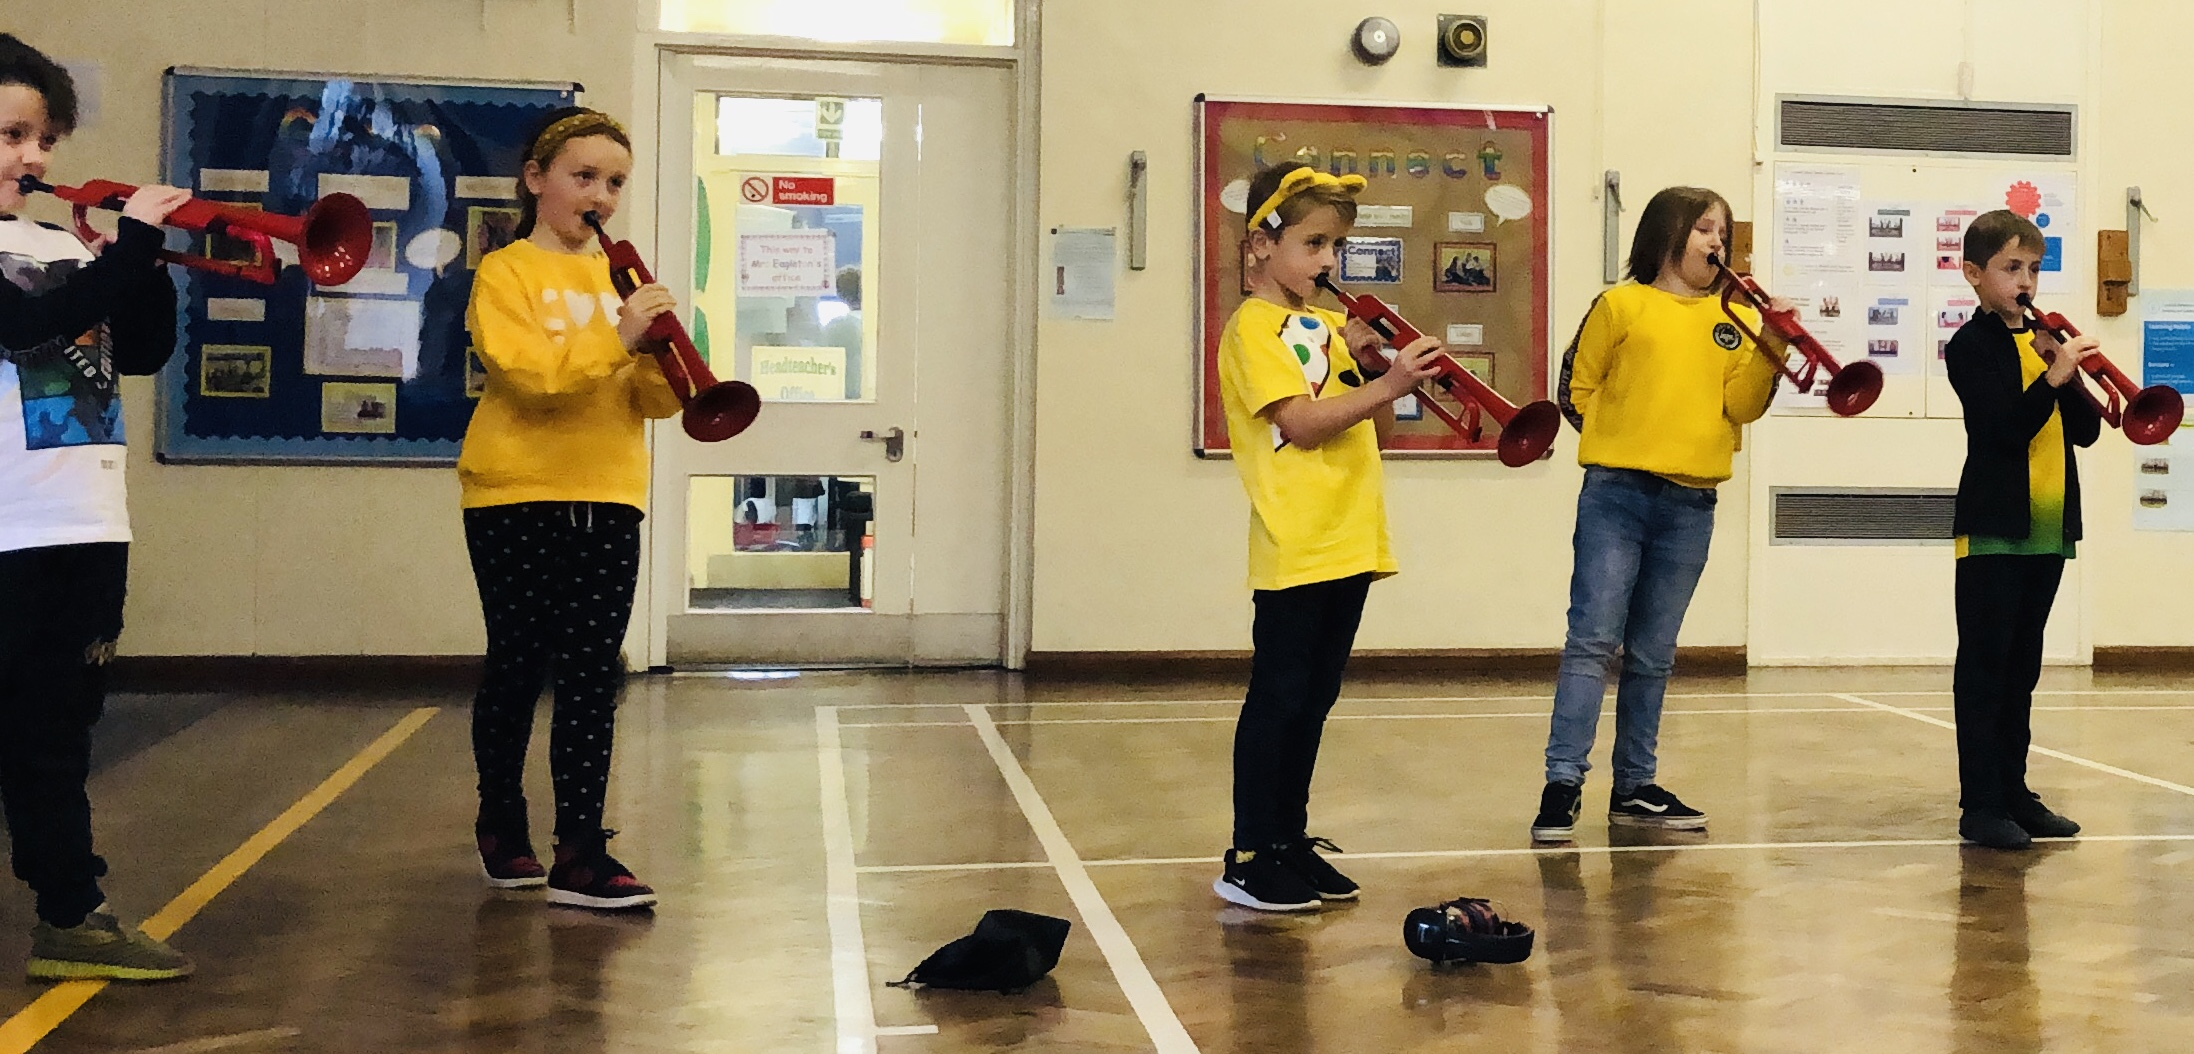 Pupils at Coit Primary School play the pBugle